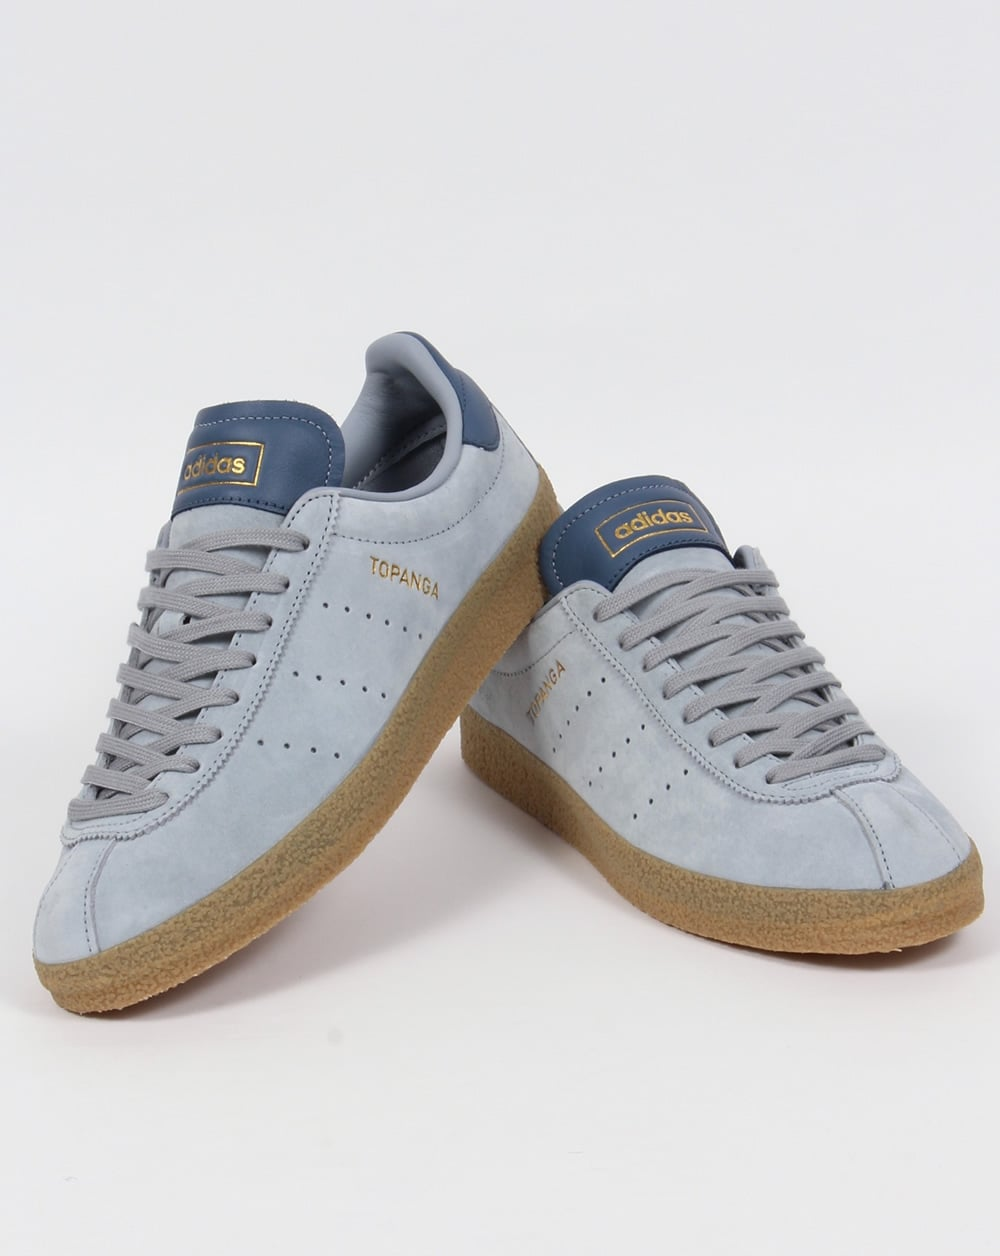 Adidas Topanga Clean Trainers Frosted Grey/ Ink